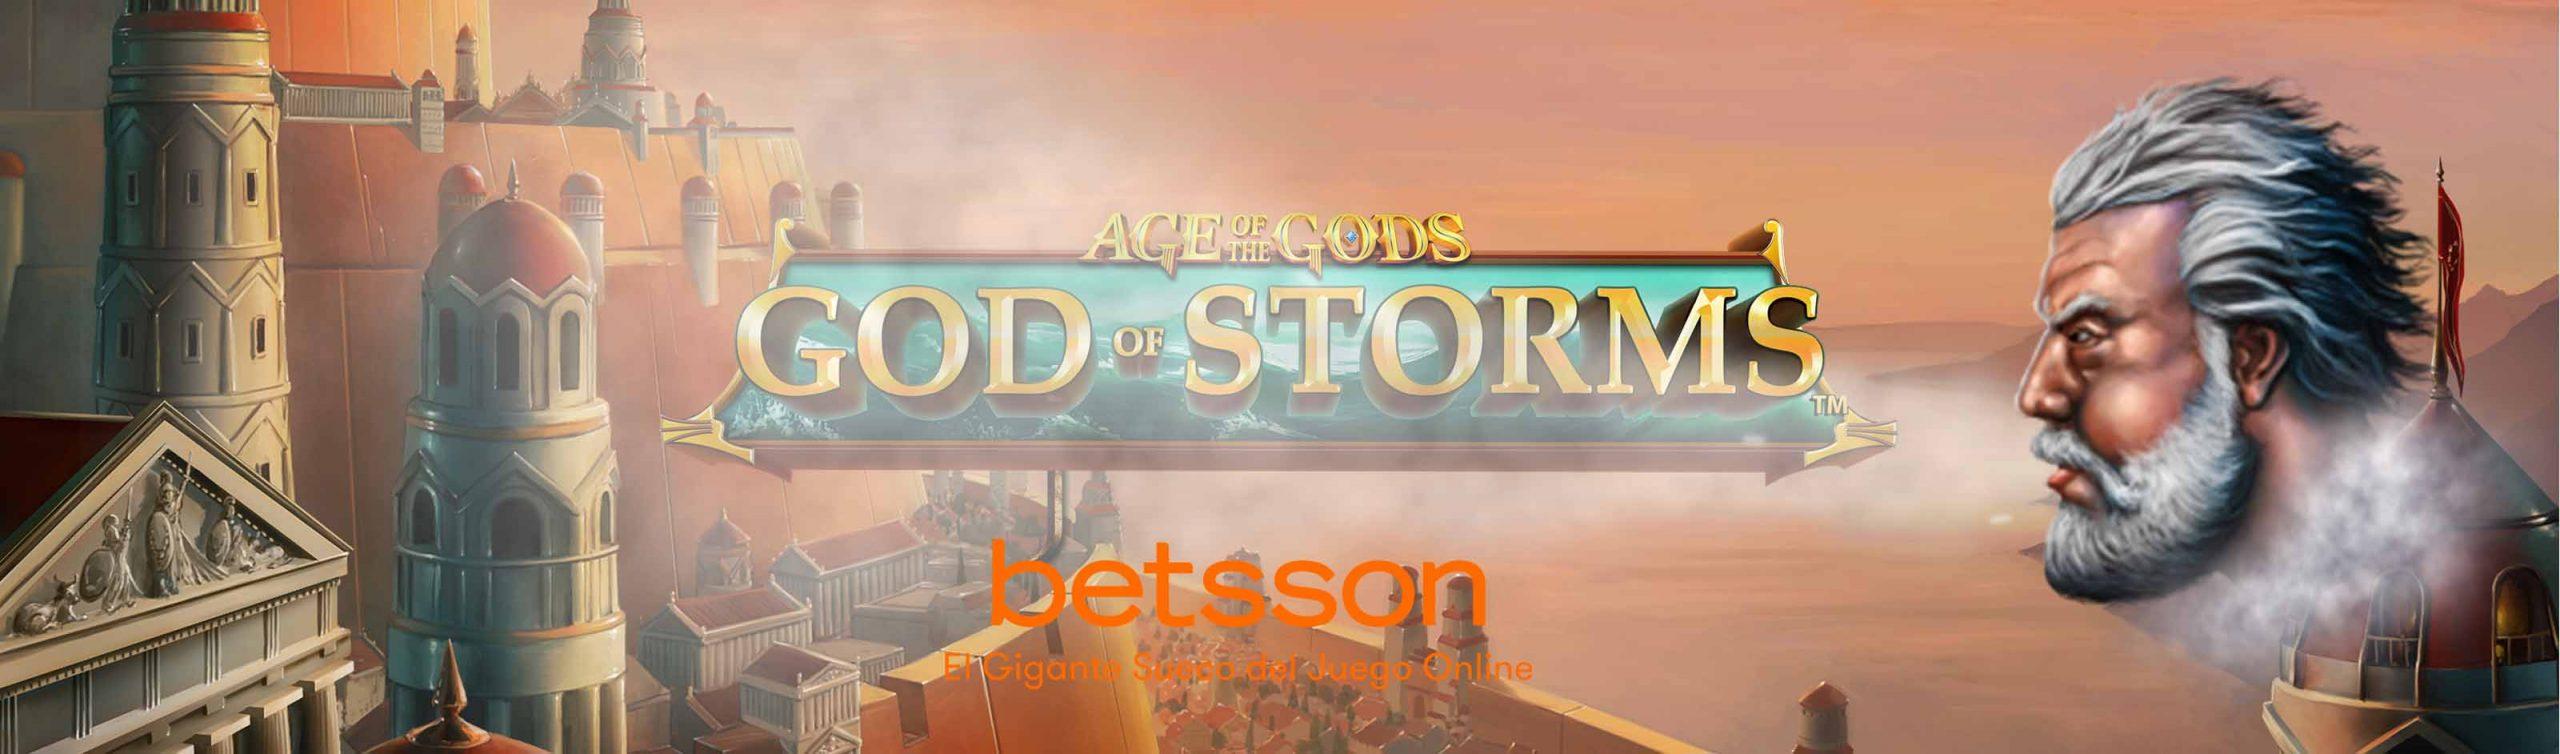 Slot Age of the Gods: God of Storms